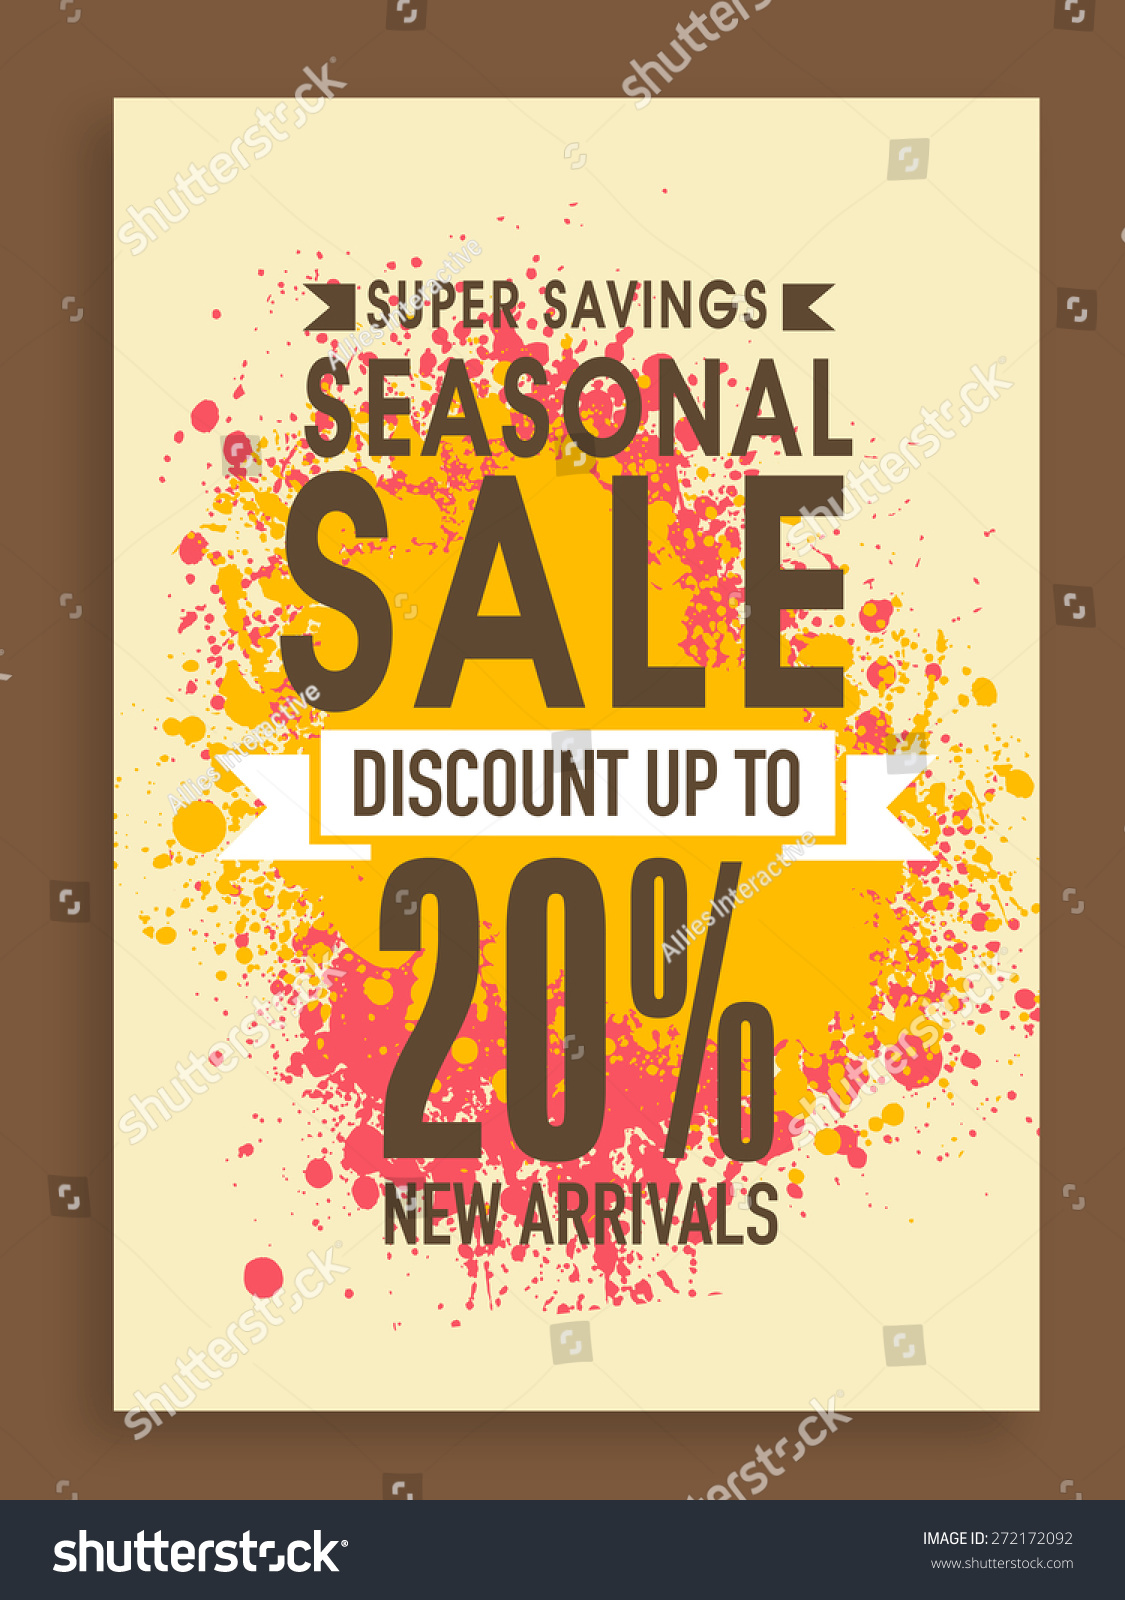 super savings seasonal poster banner stock vector  super savings seasonal poster banner or flyer design discount offer on new